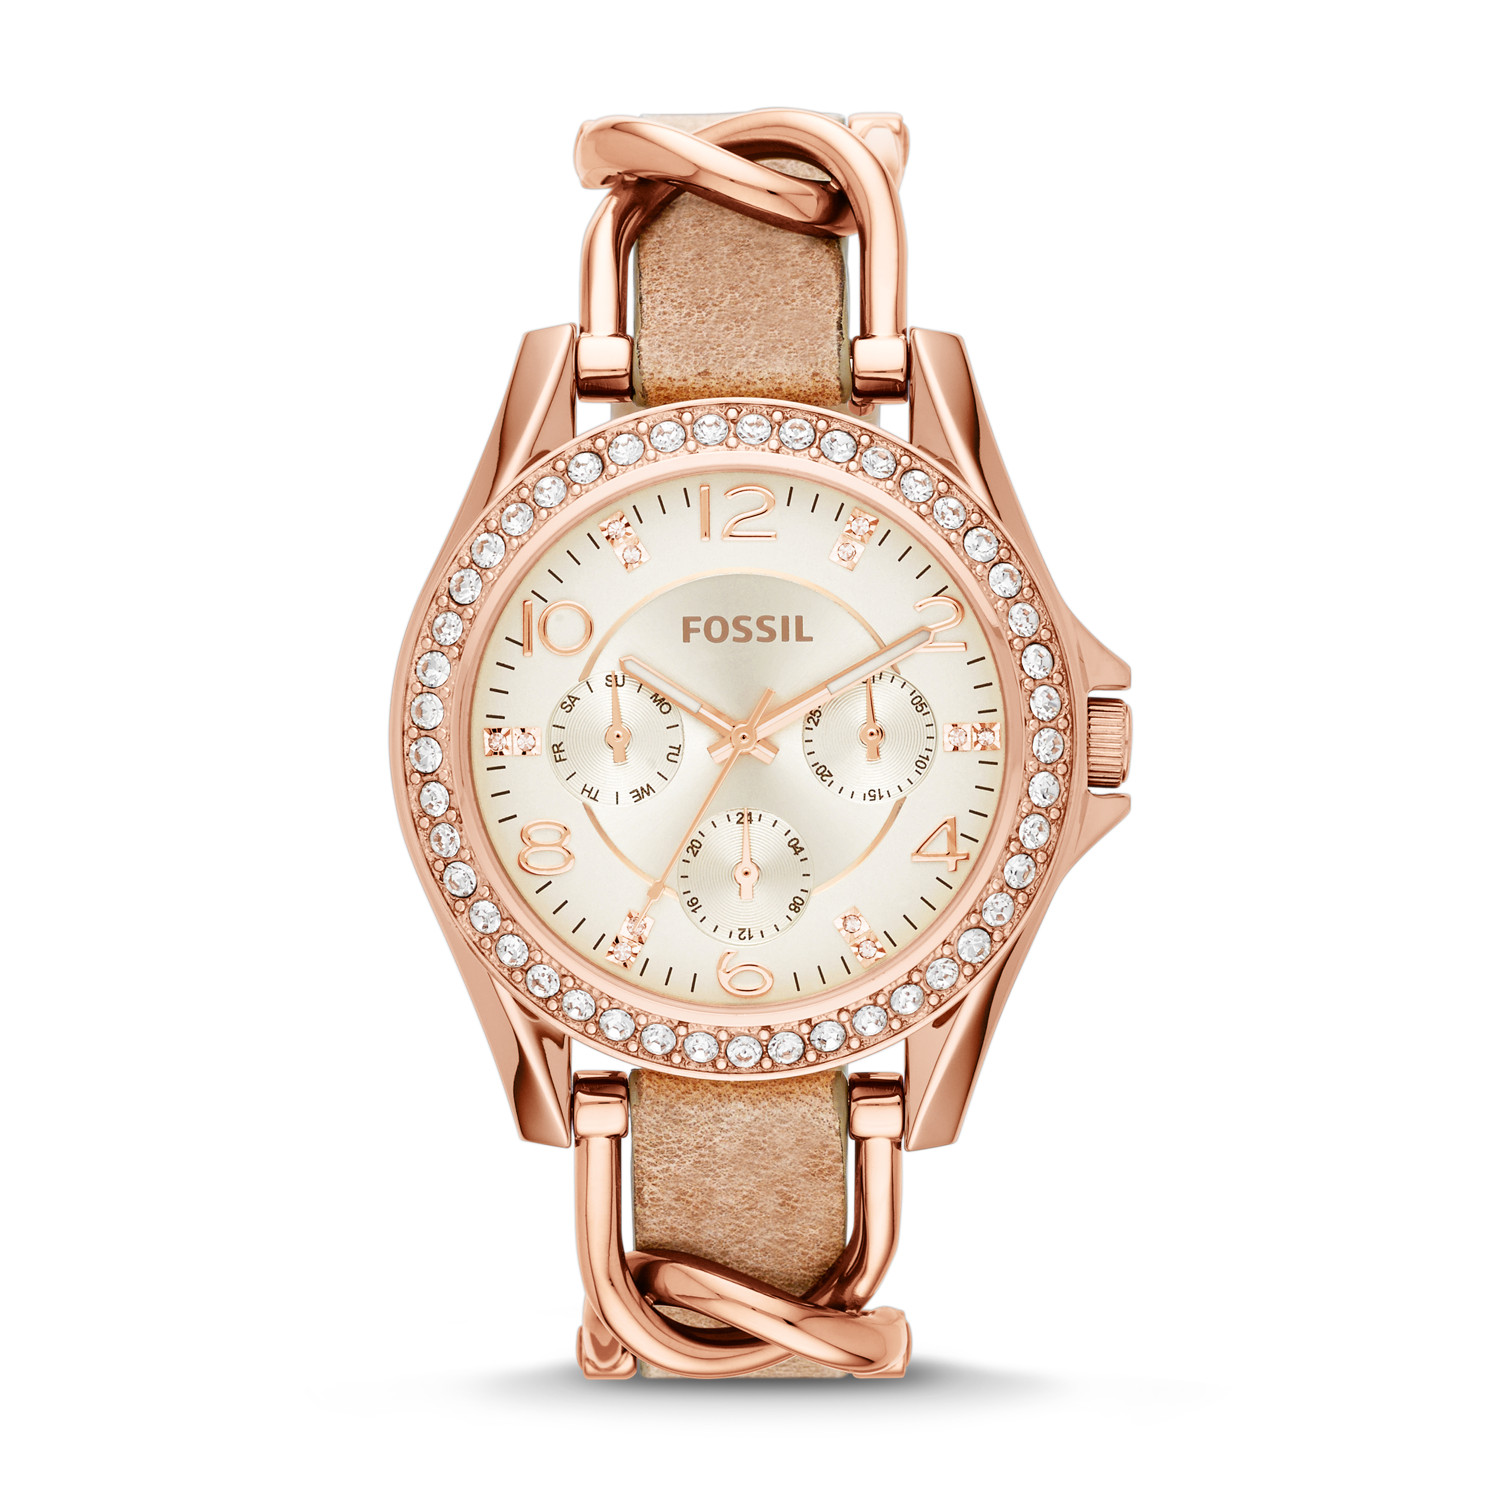 fossil watches, fossil, watches, women's watches, Fossil Riley Multifunction Stainless Steel & Leather Watch